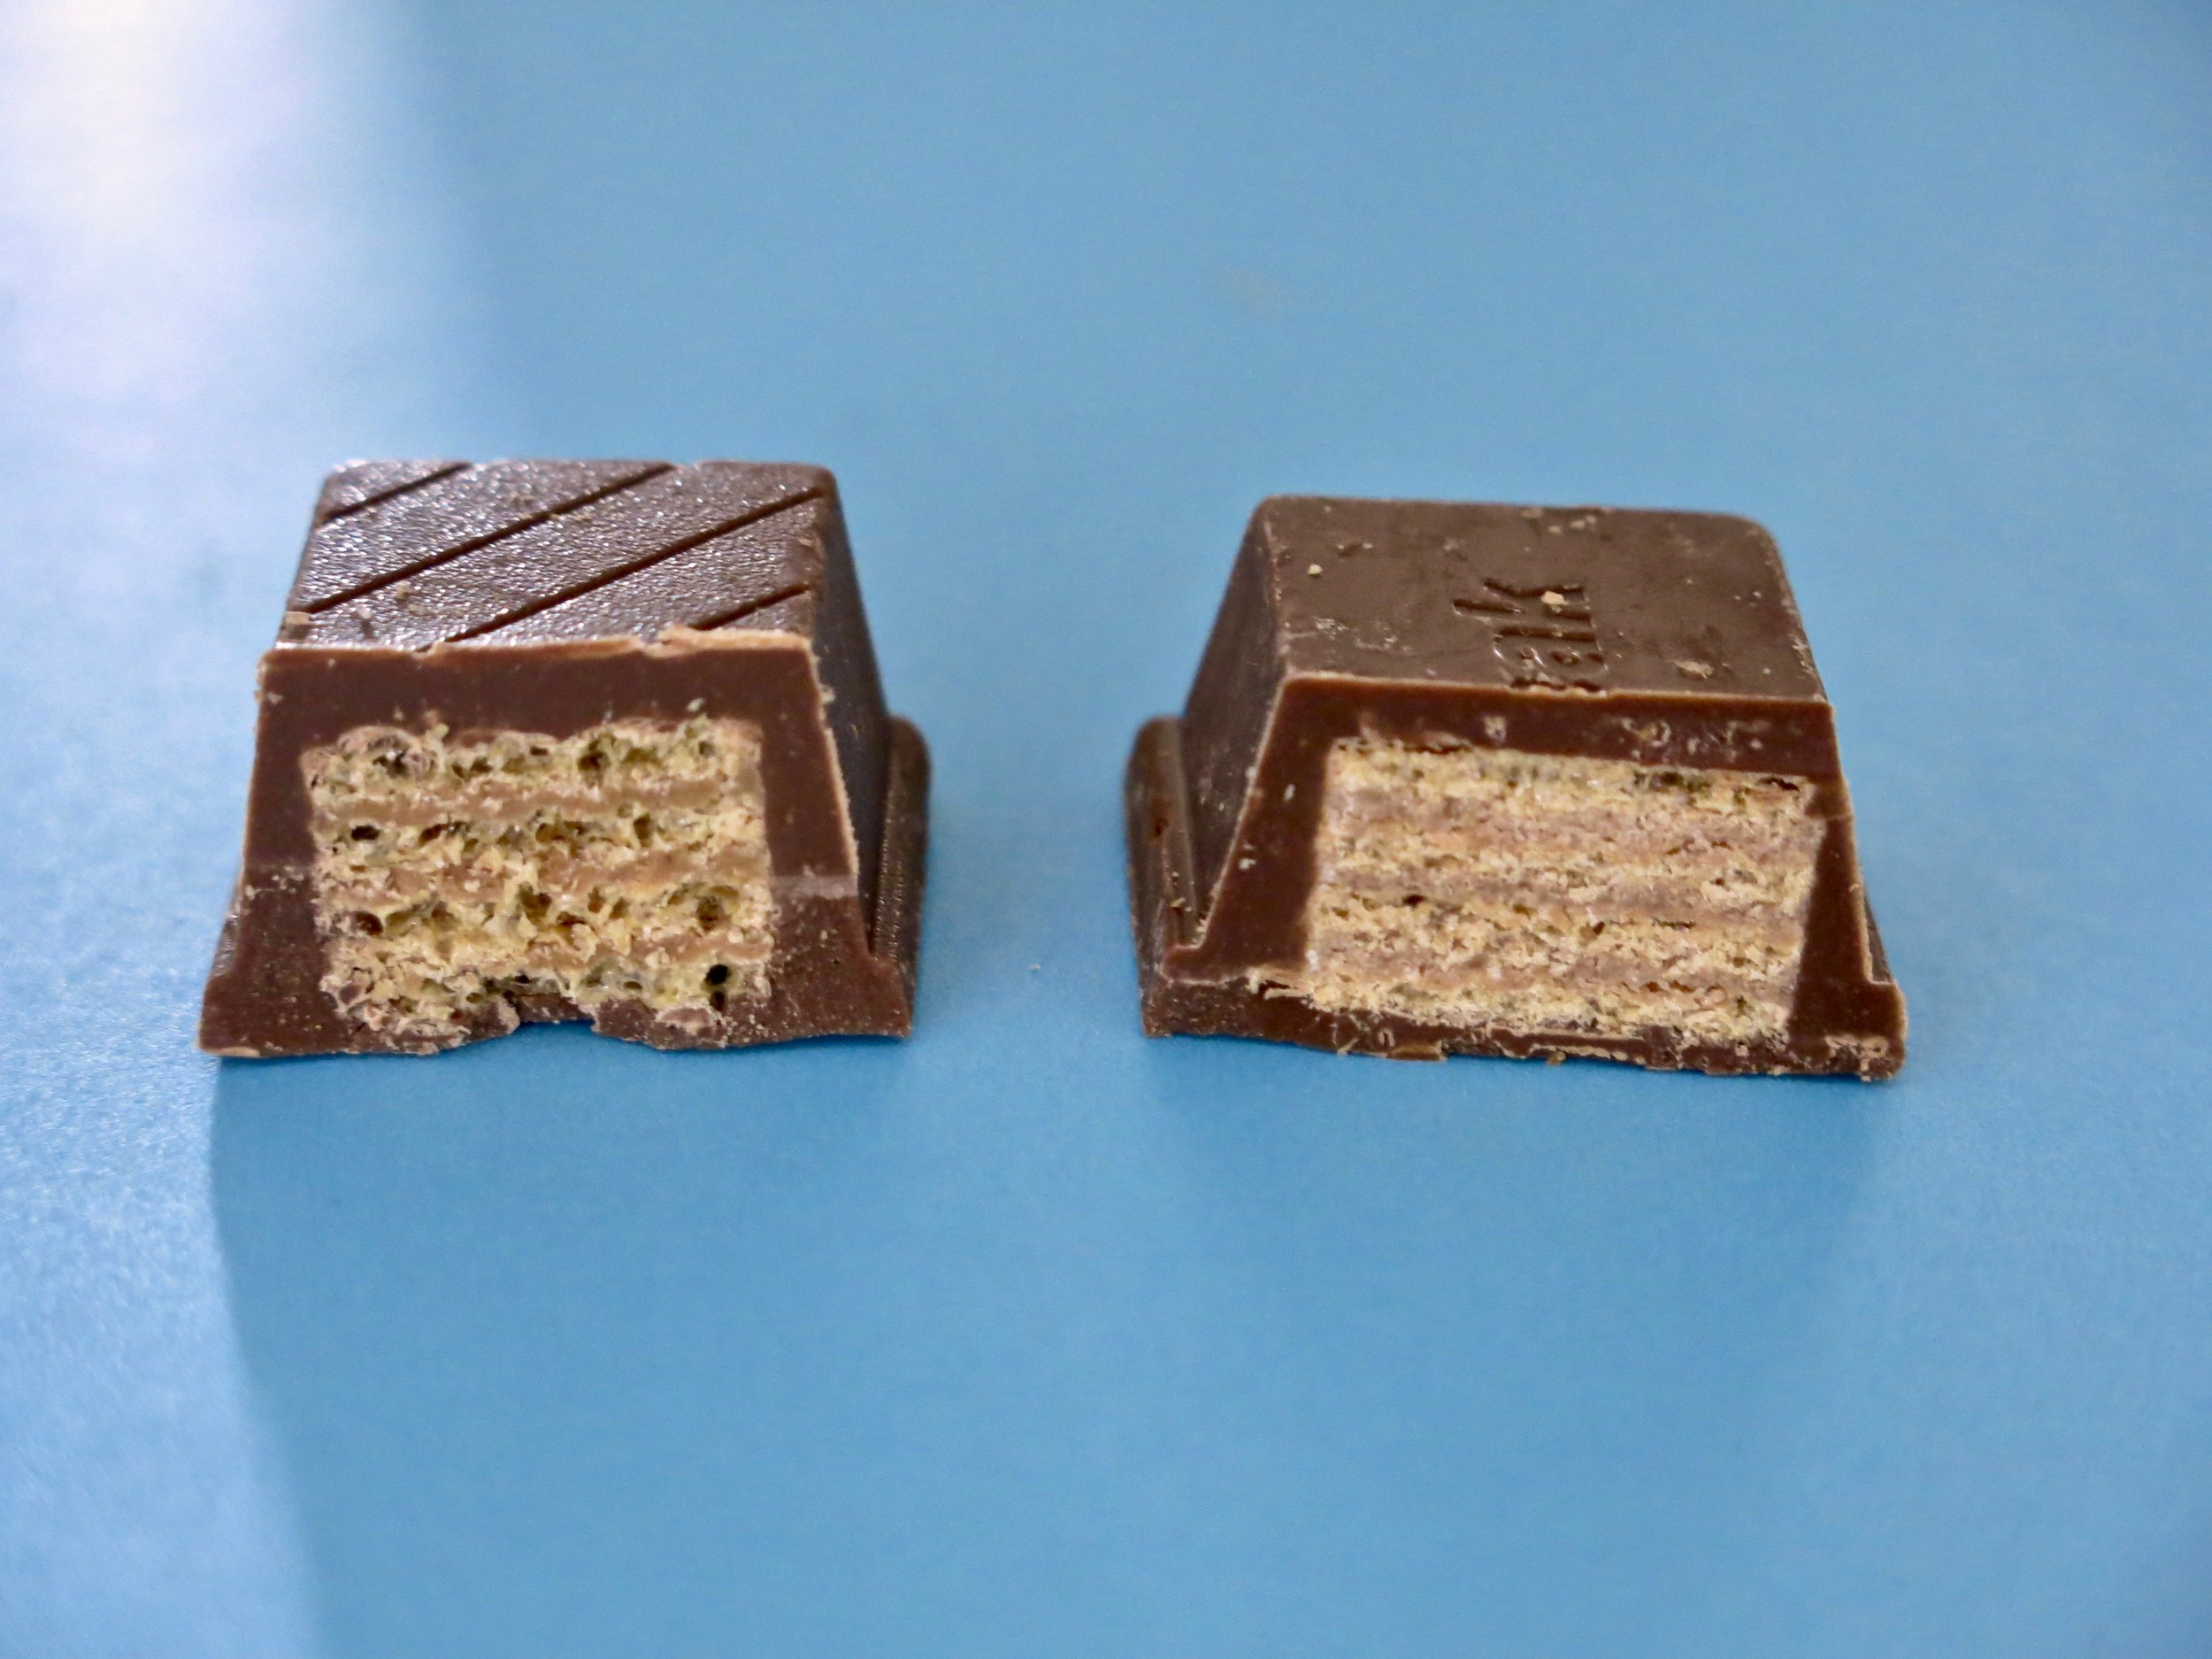 4fun on the left, Kit Kat Chunky on the right.